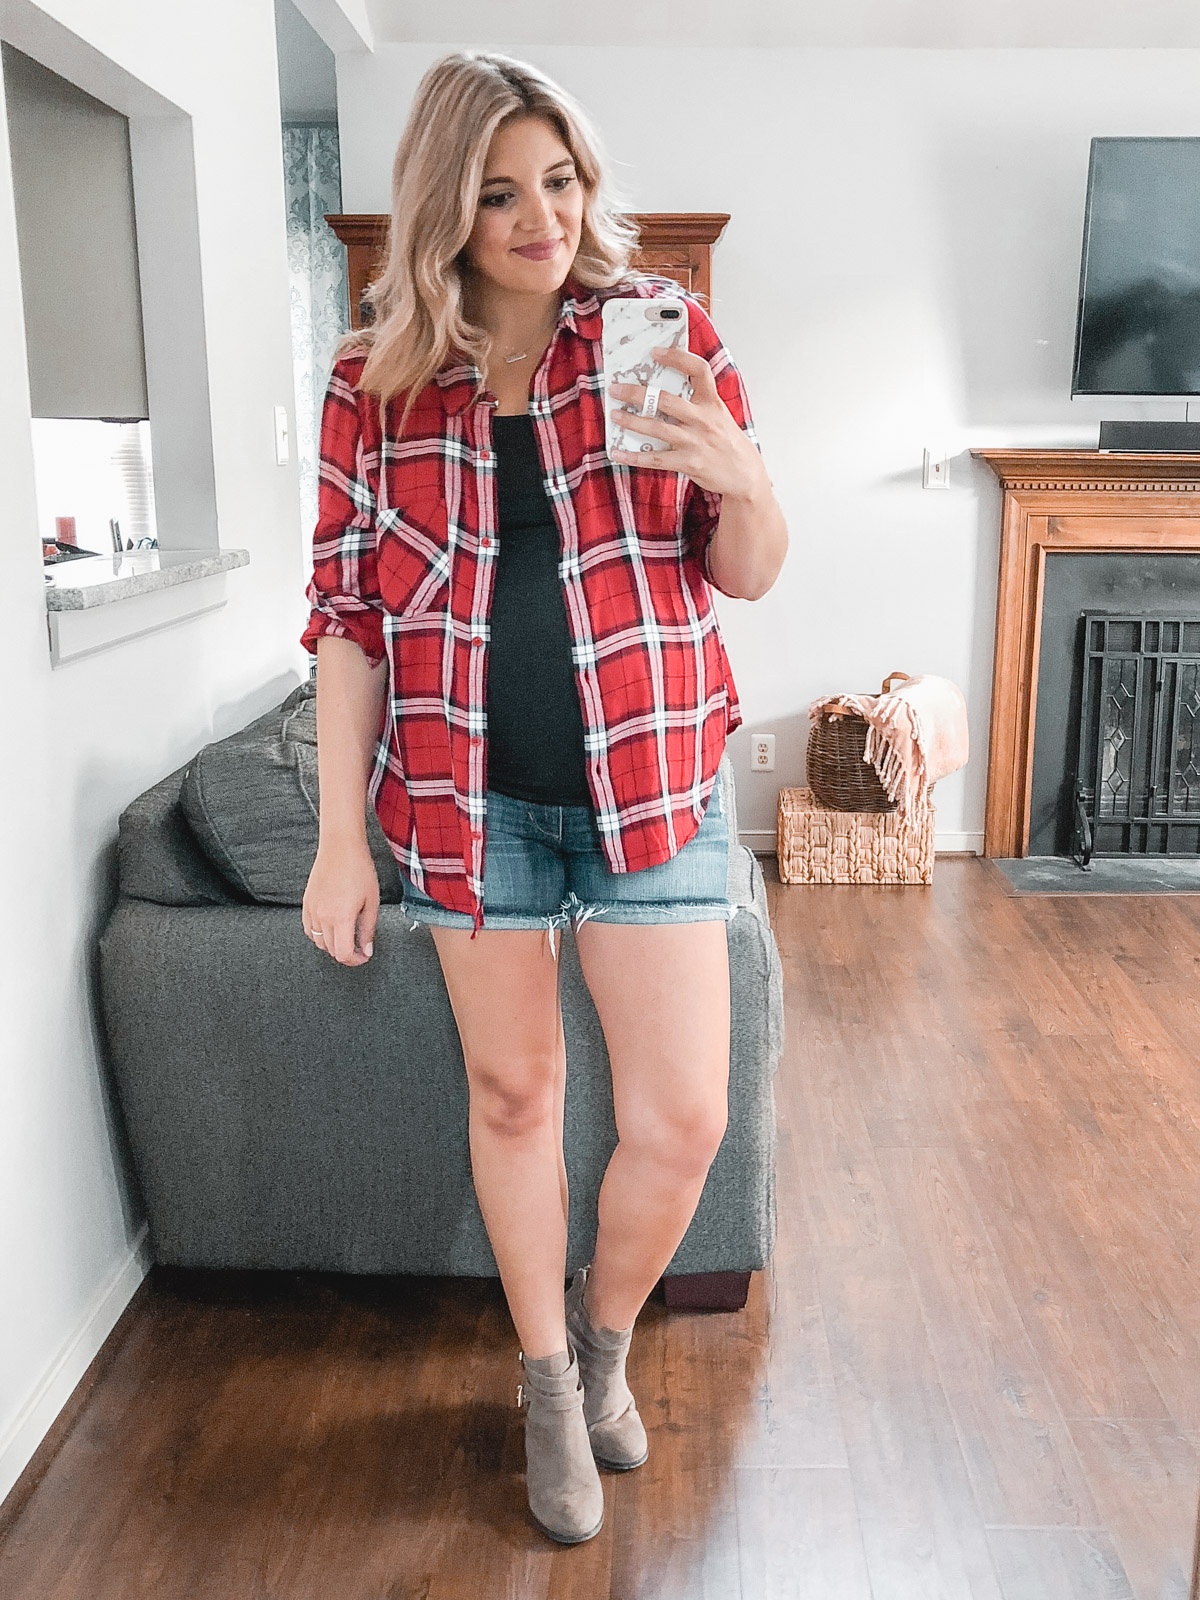 early fall plaid top outfit. Need plaid top outfit ideas? I'm sharing one $31 plaid top styled 15 different ways on bylaurenm.com!